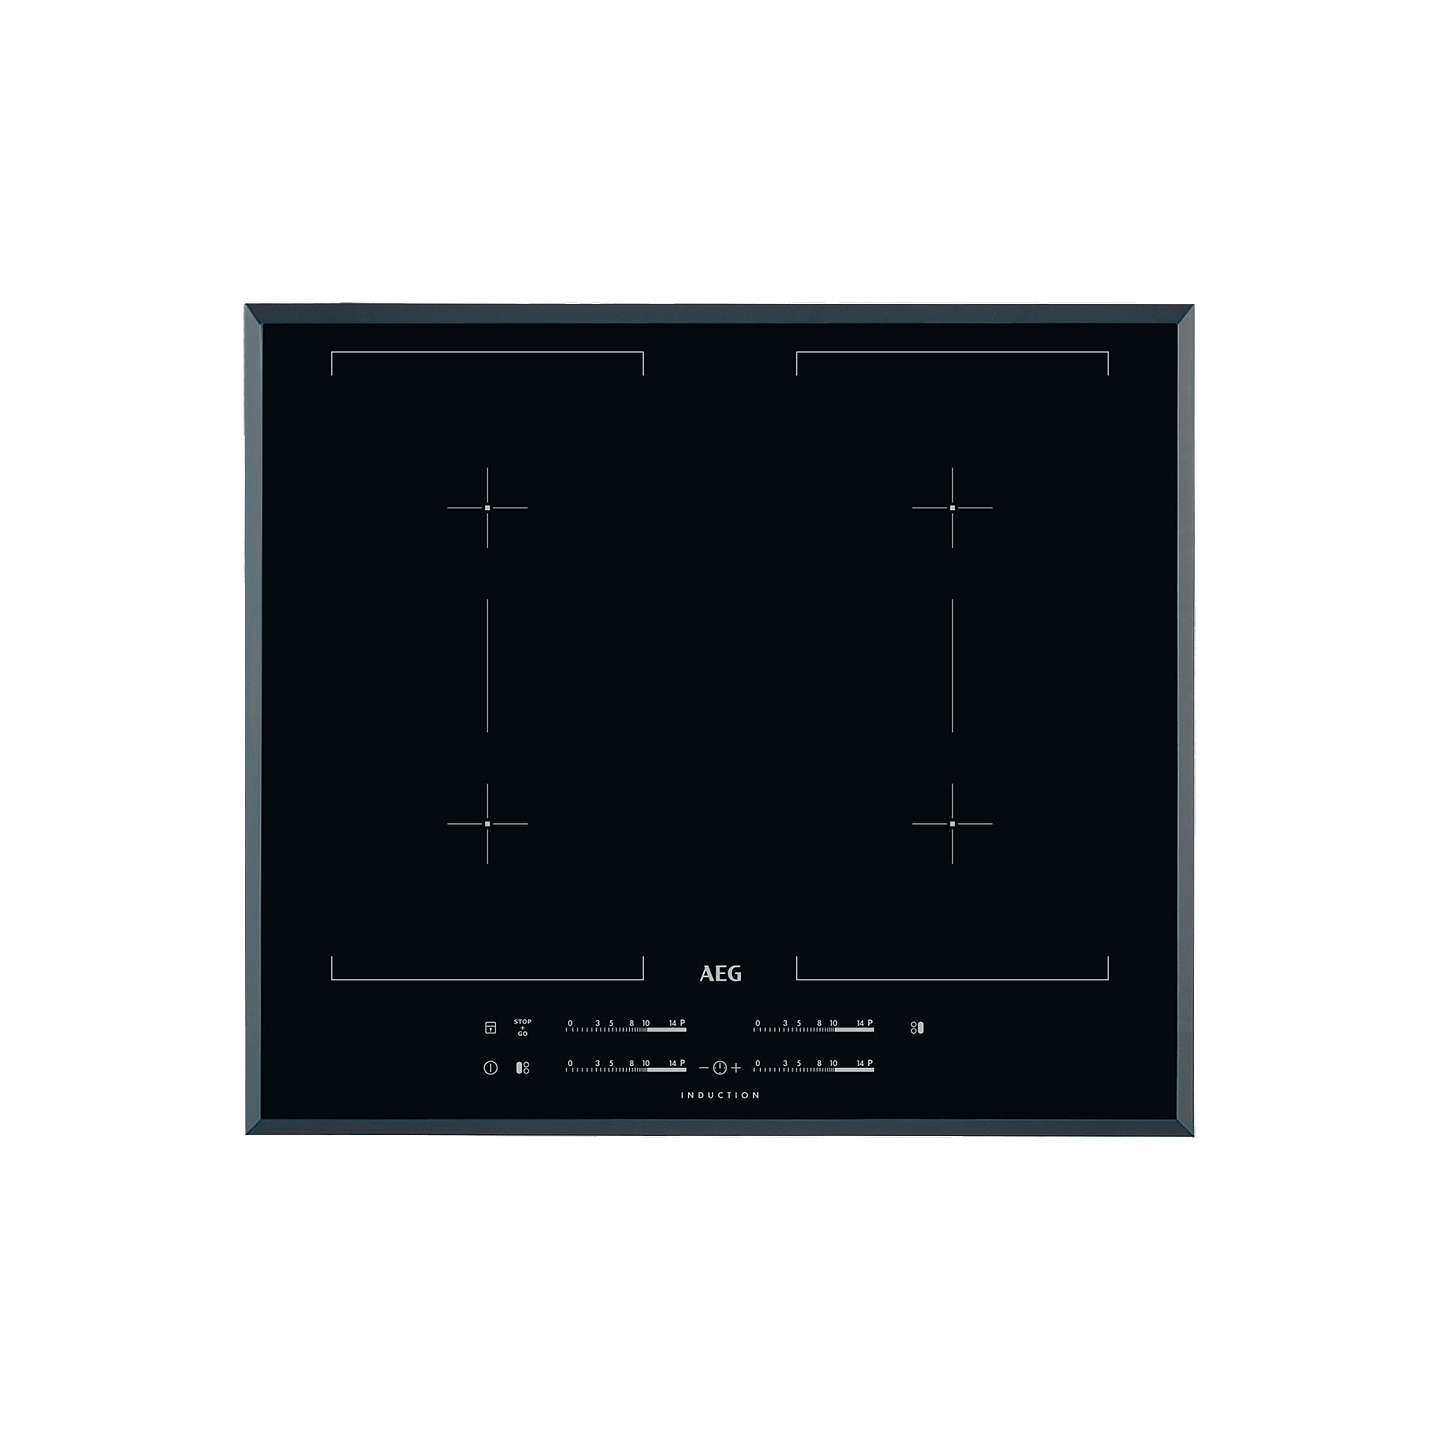 aeg hk654400fb maxisense induction hob black at john lewis. Black Bedroom Furniture Sets. Home Design Ideas